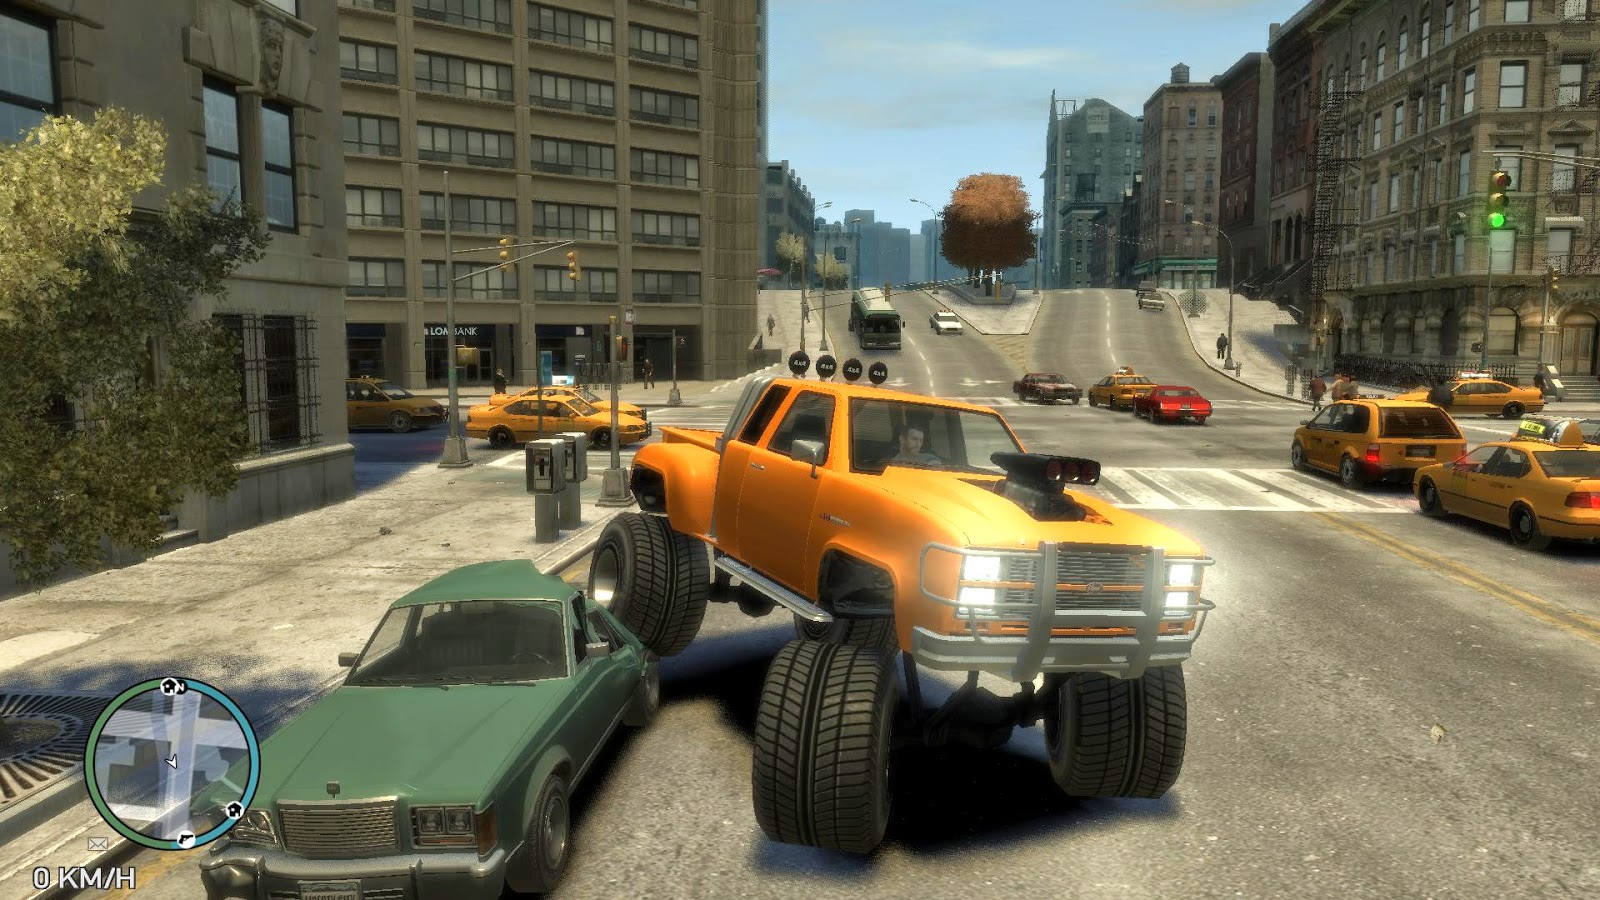 Gta 4 Highly Compressed At Least 10mb - lostedge